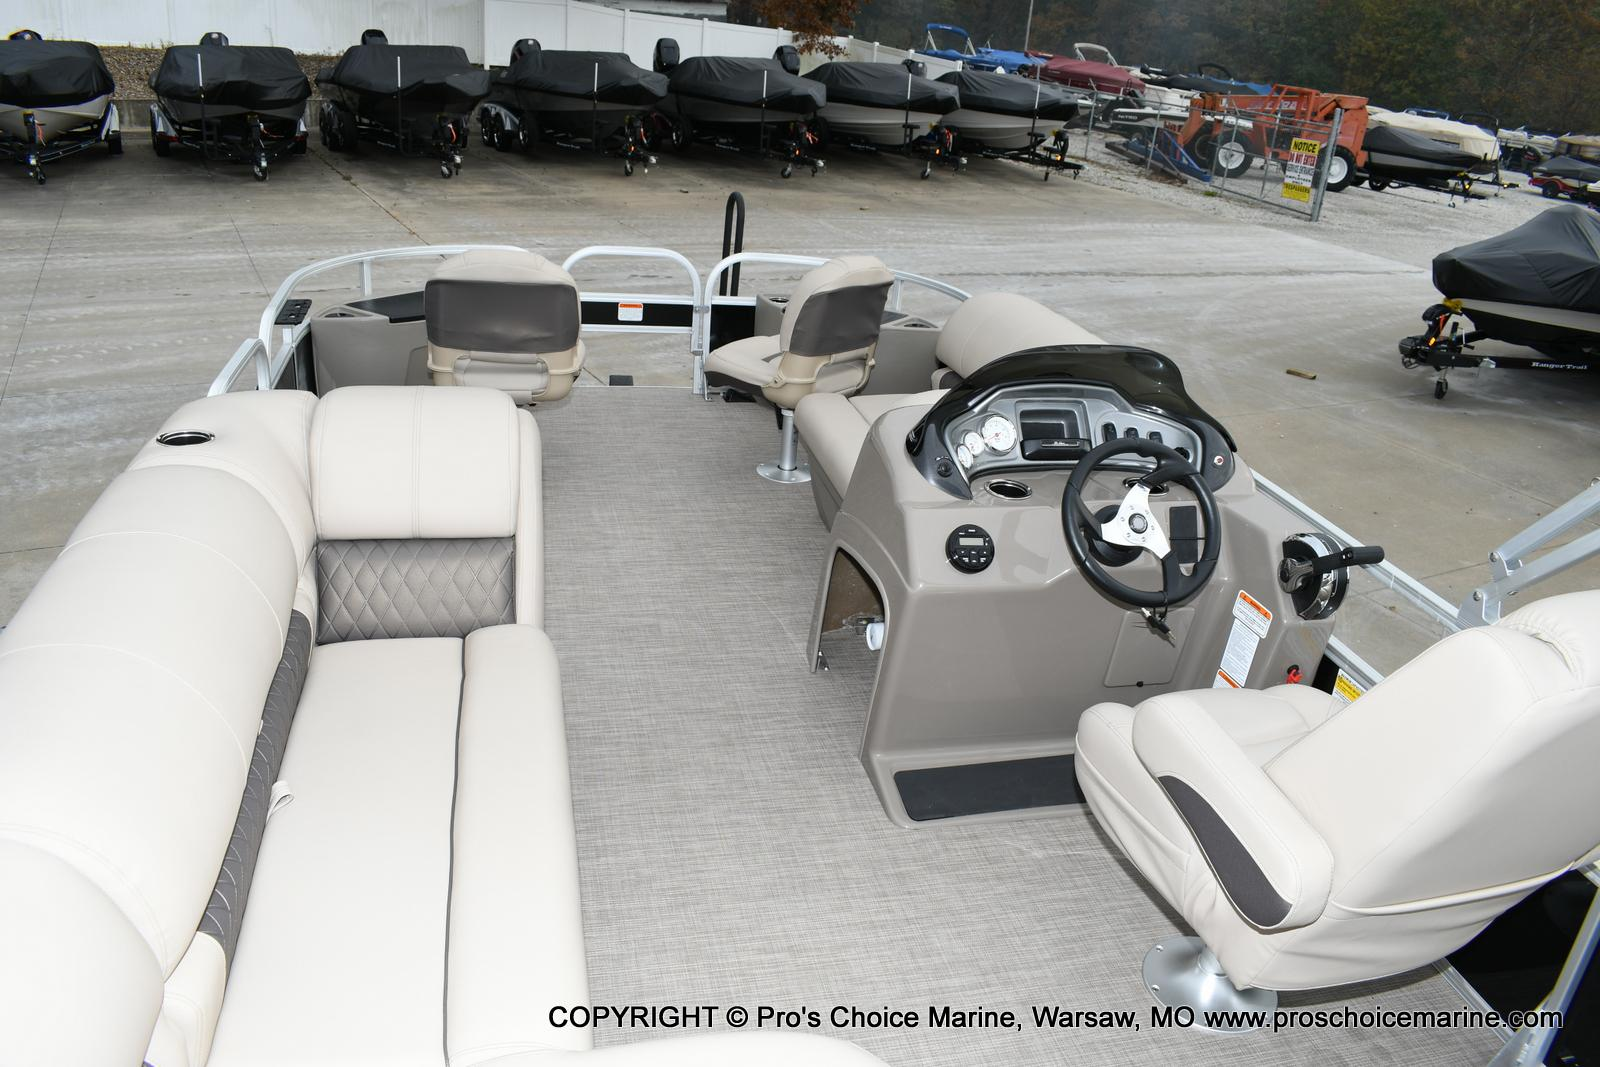 2020 Sun Tracker boat for sale, model of the boat is Fishin' Barge 20 DLX & Image # 9 of 50